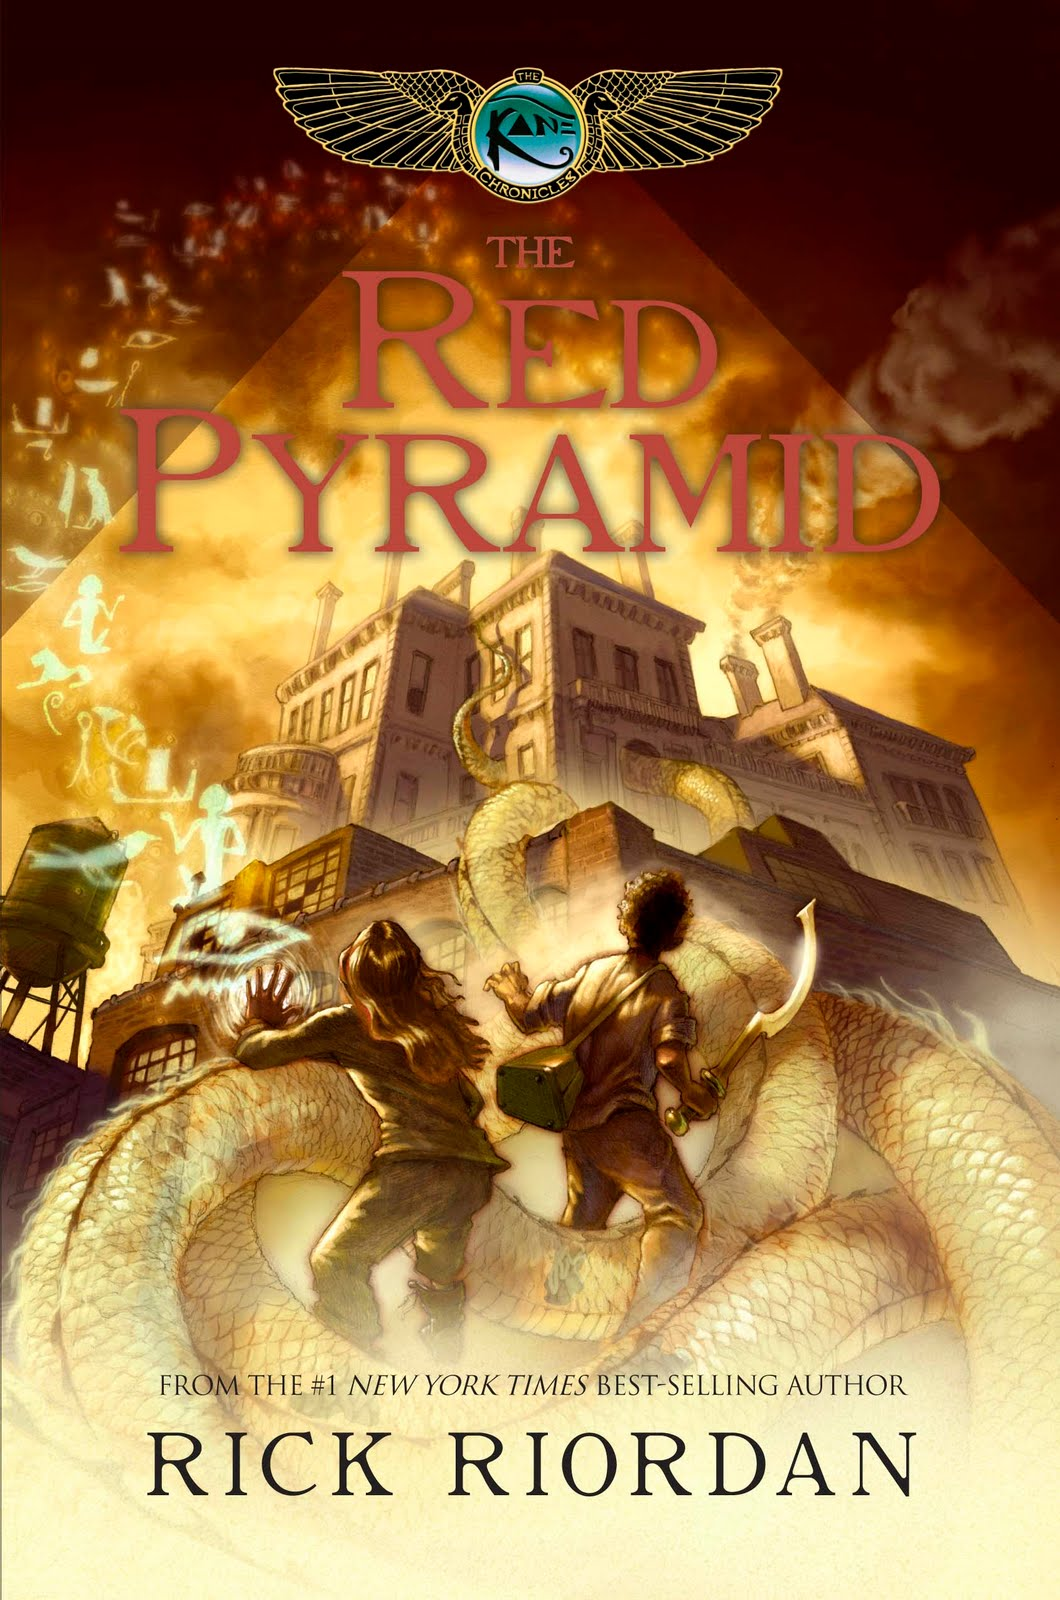 Riordan_Red pyramid